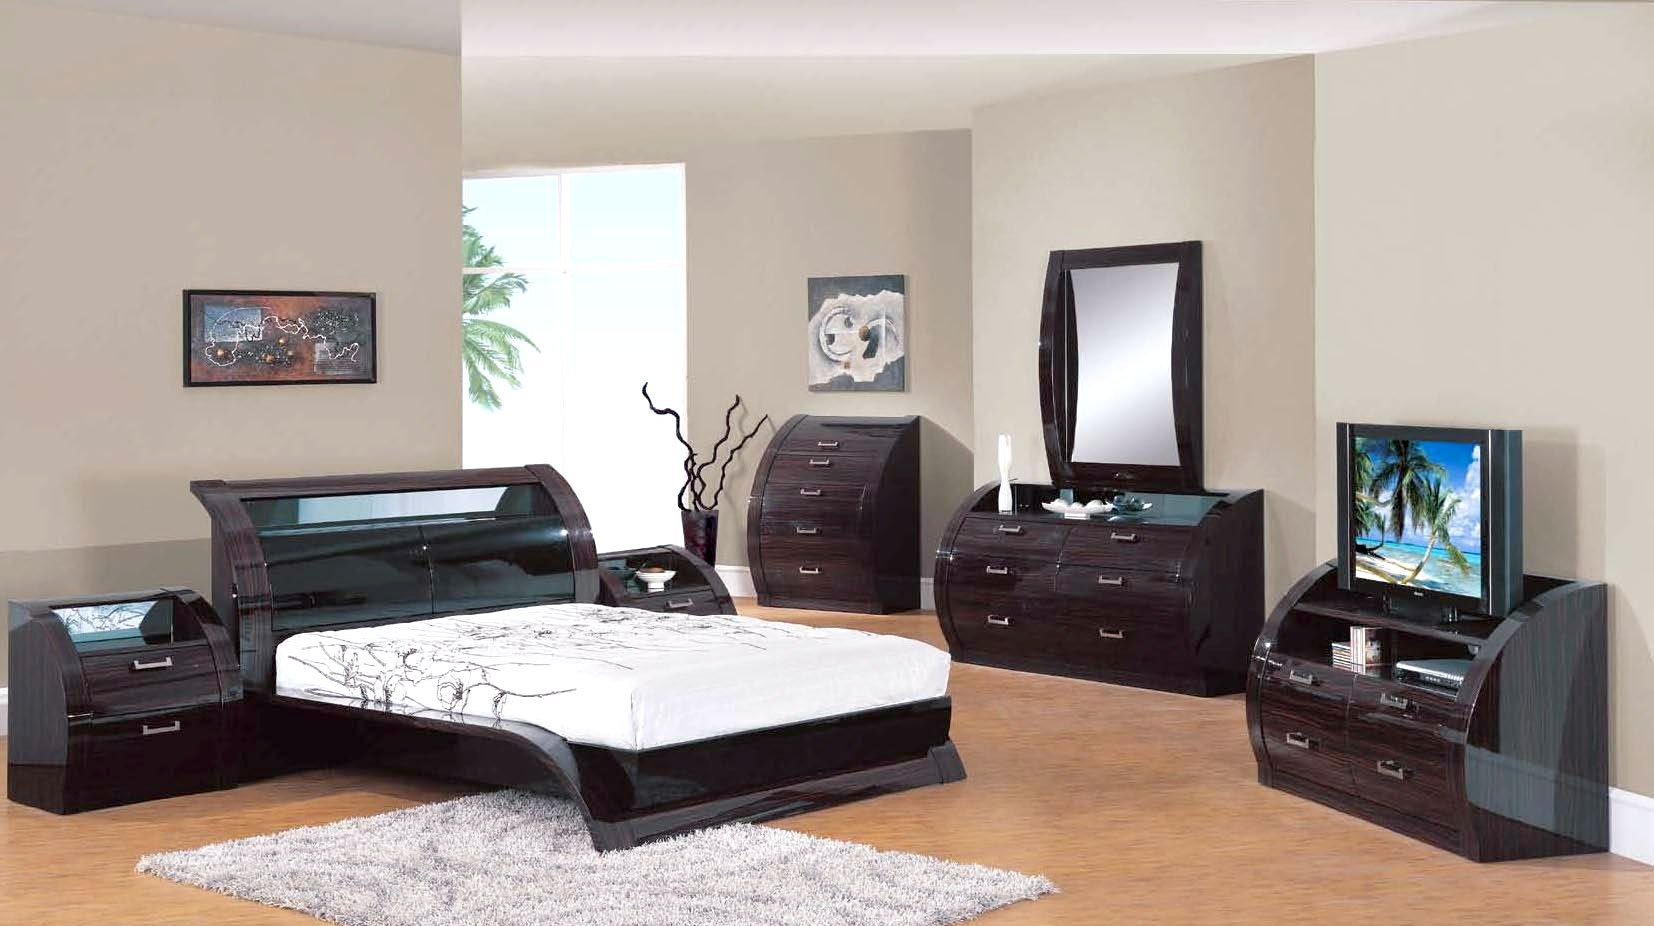 Furnitures fashion modern bedroom furniture design - Furnitures Fashion Modern Bedroom Furniture Design 25